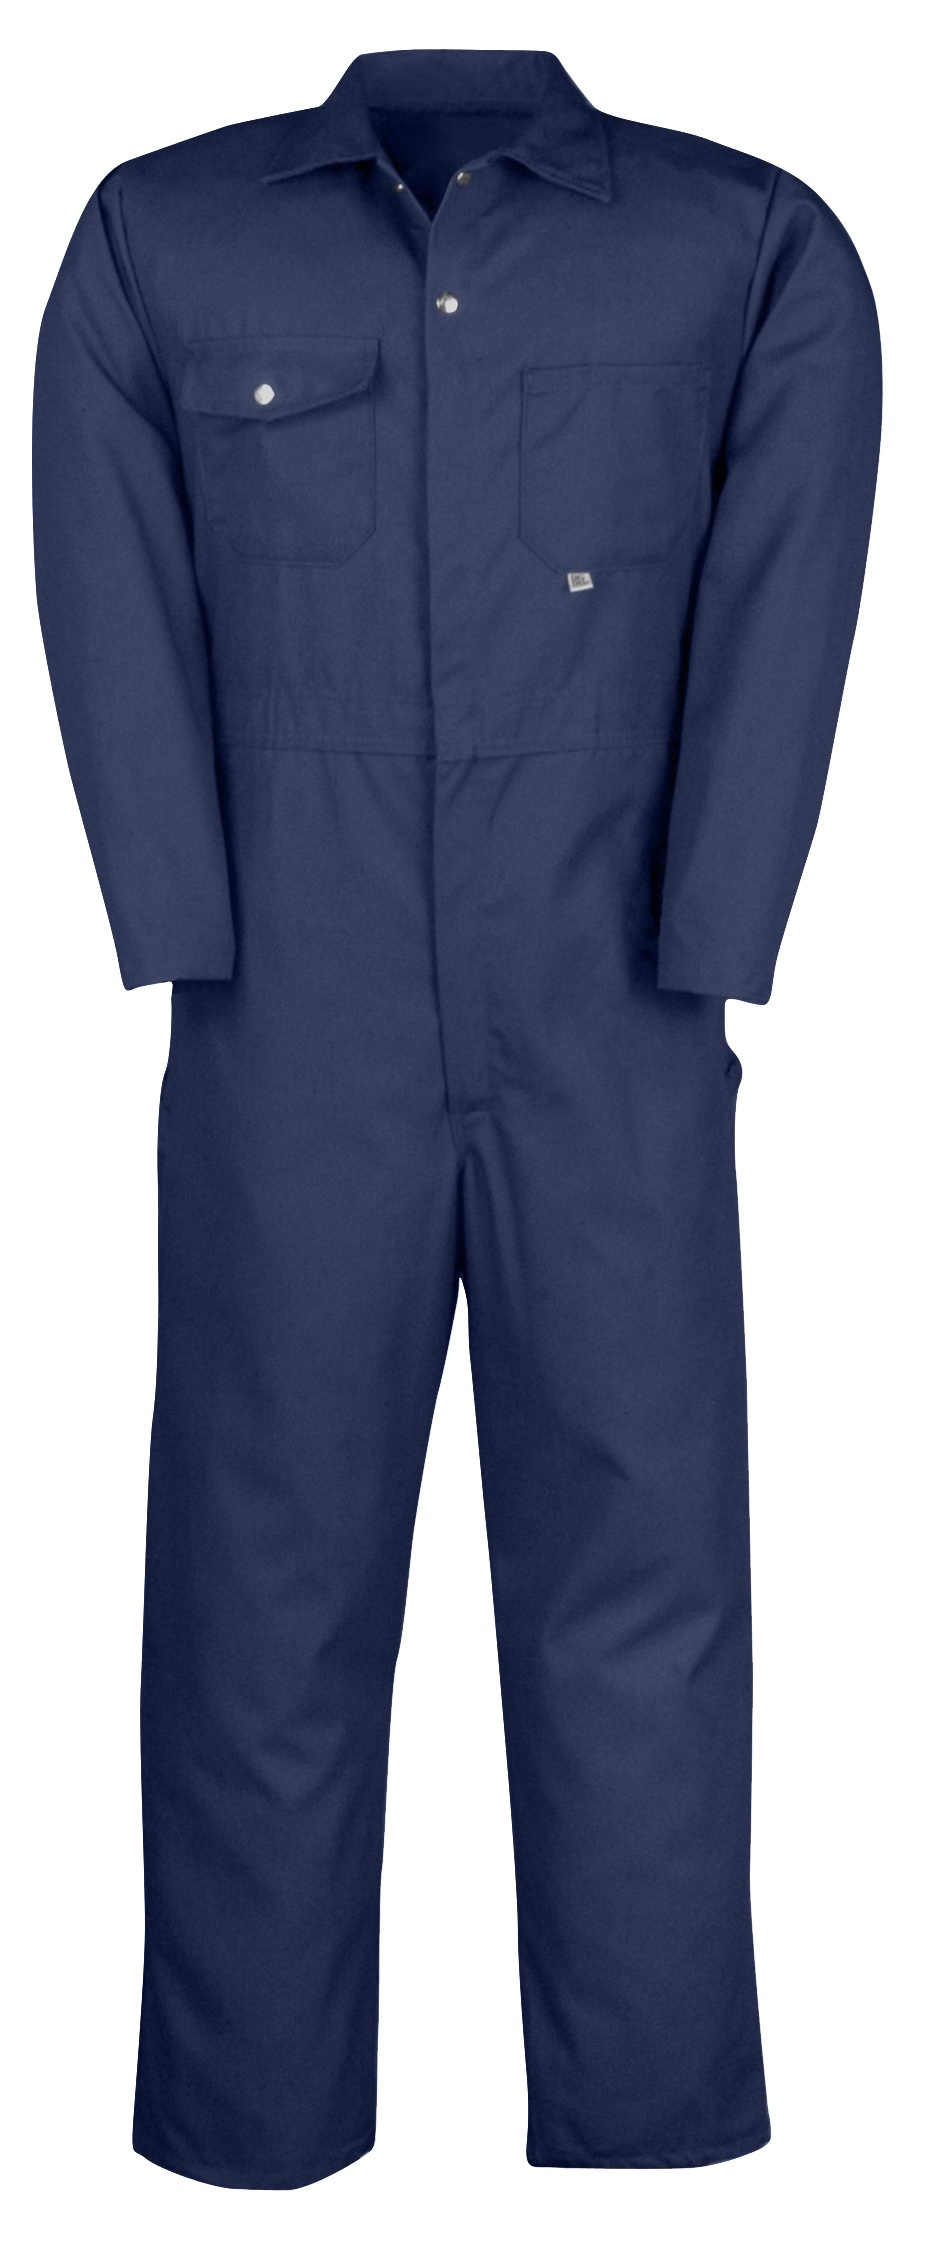 7.5 oz Twill Deluxe Coverall-